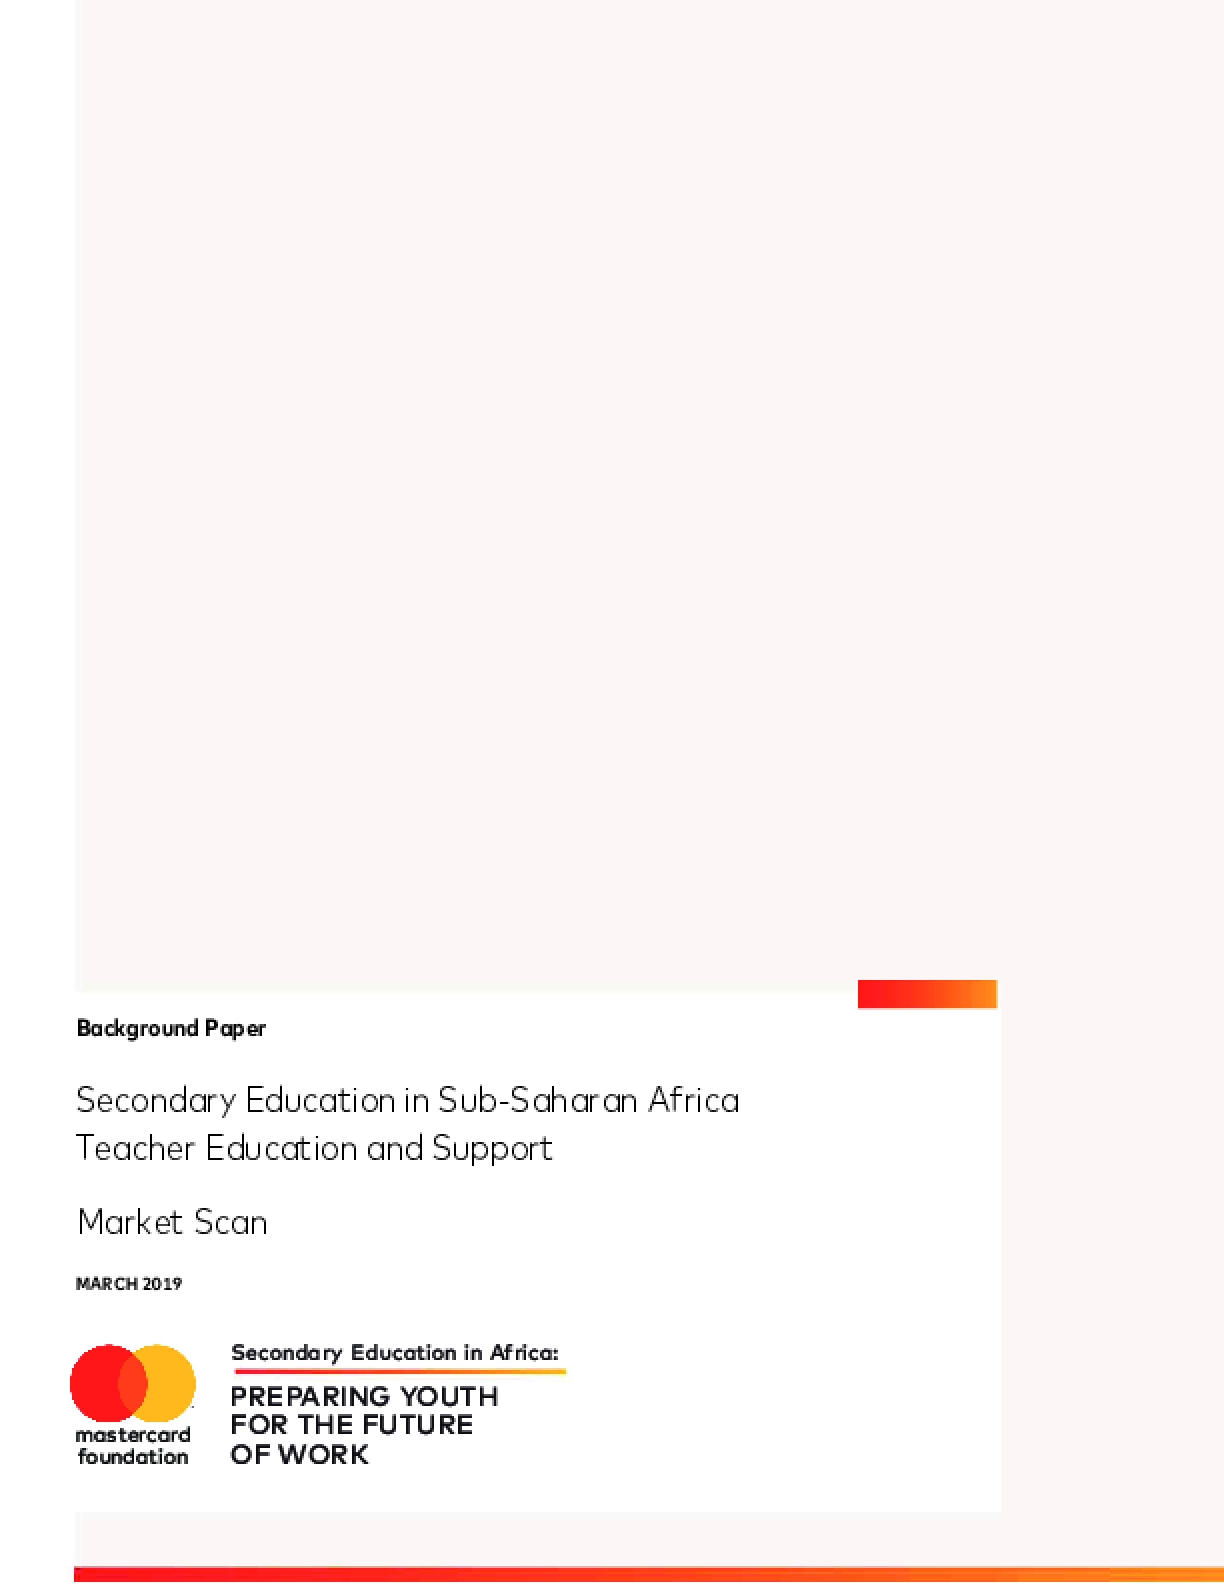 Secondary Education in Sub-Saharan Africa Teacher Education and Support  - Market Scan